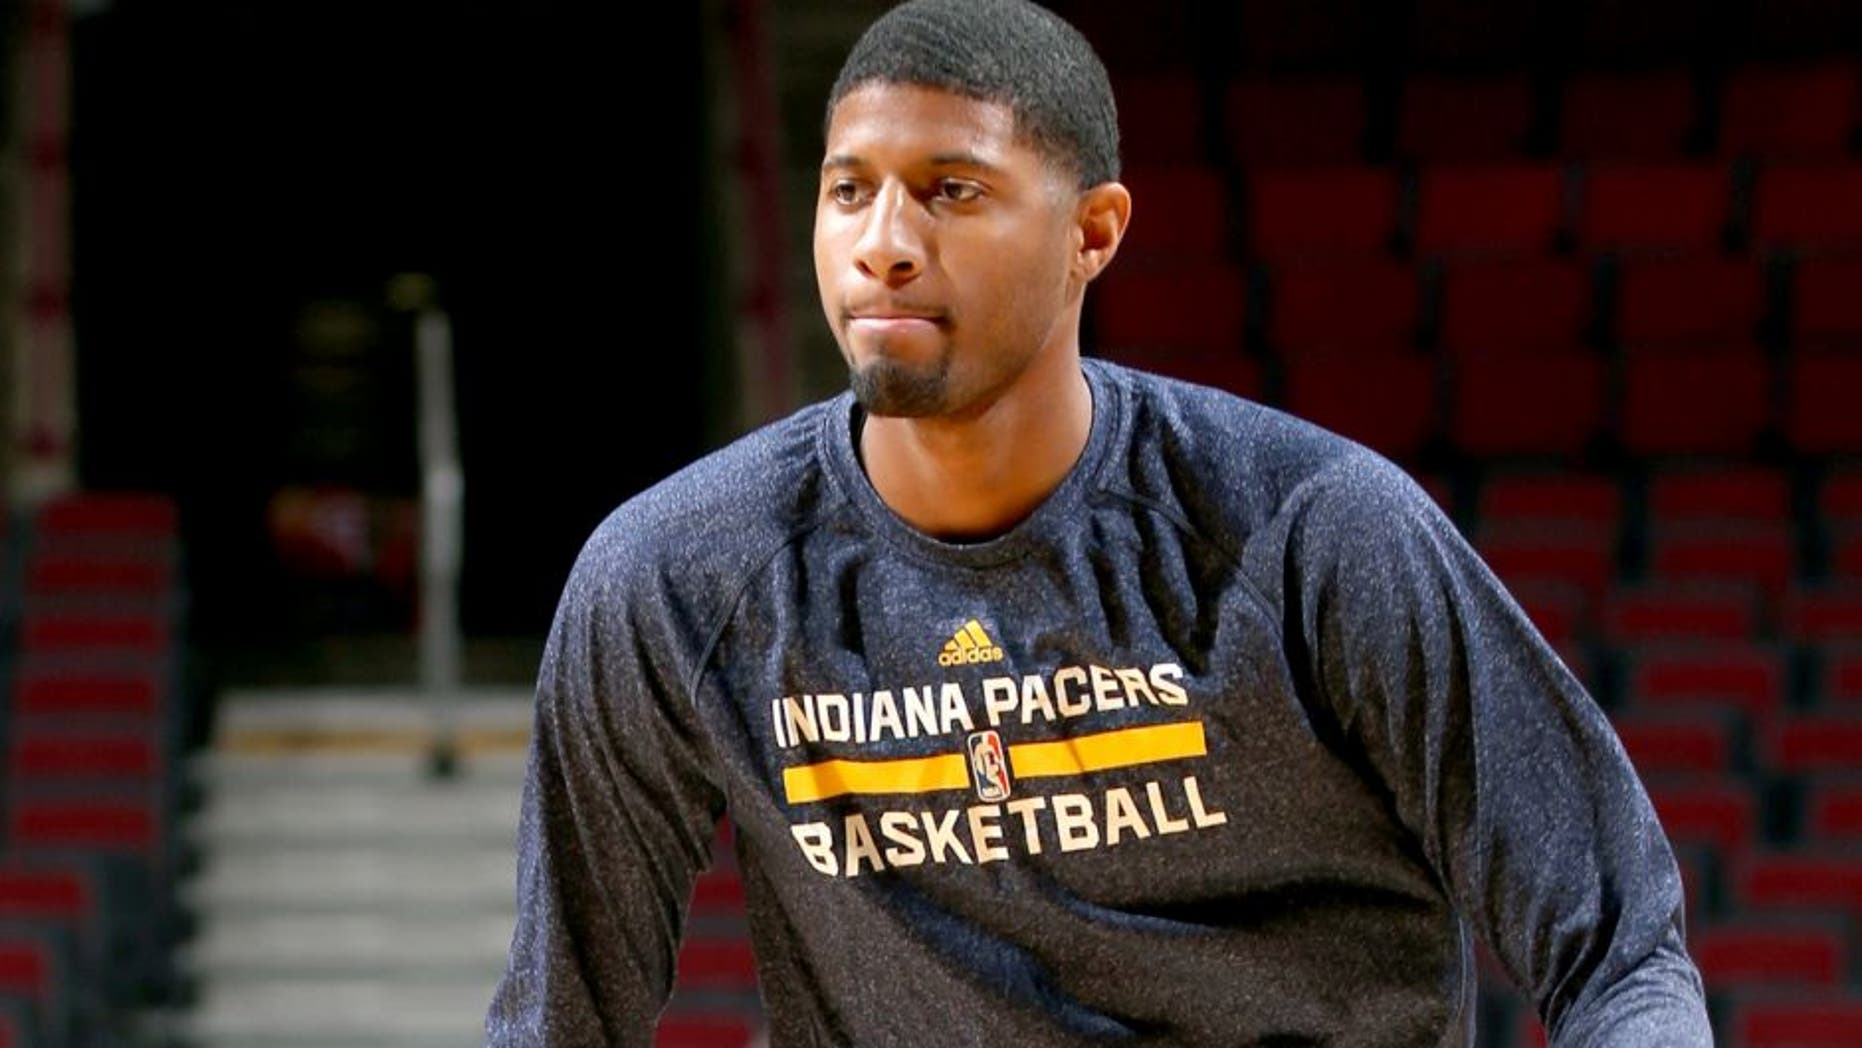 CHICAGO, IL - MARCH 18: Paul George #13 of the Indiana Pacers warms up before a game against the Chicago Bulls on March 18, 2015 at the United Center in Chicago, Illinois. NOTE TO USER: User expressly acknowledges and agrees that, by downloading and or using this Photograph, user is consenting to the terms and conditions of the Getty Images License Agreement. Mandatory Copyright Notice: Copyright 2015 NBAE (Photo by Joe Murphy/NBAE via Getty Images)